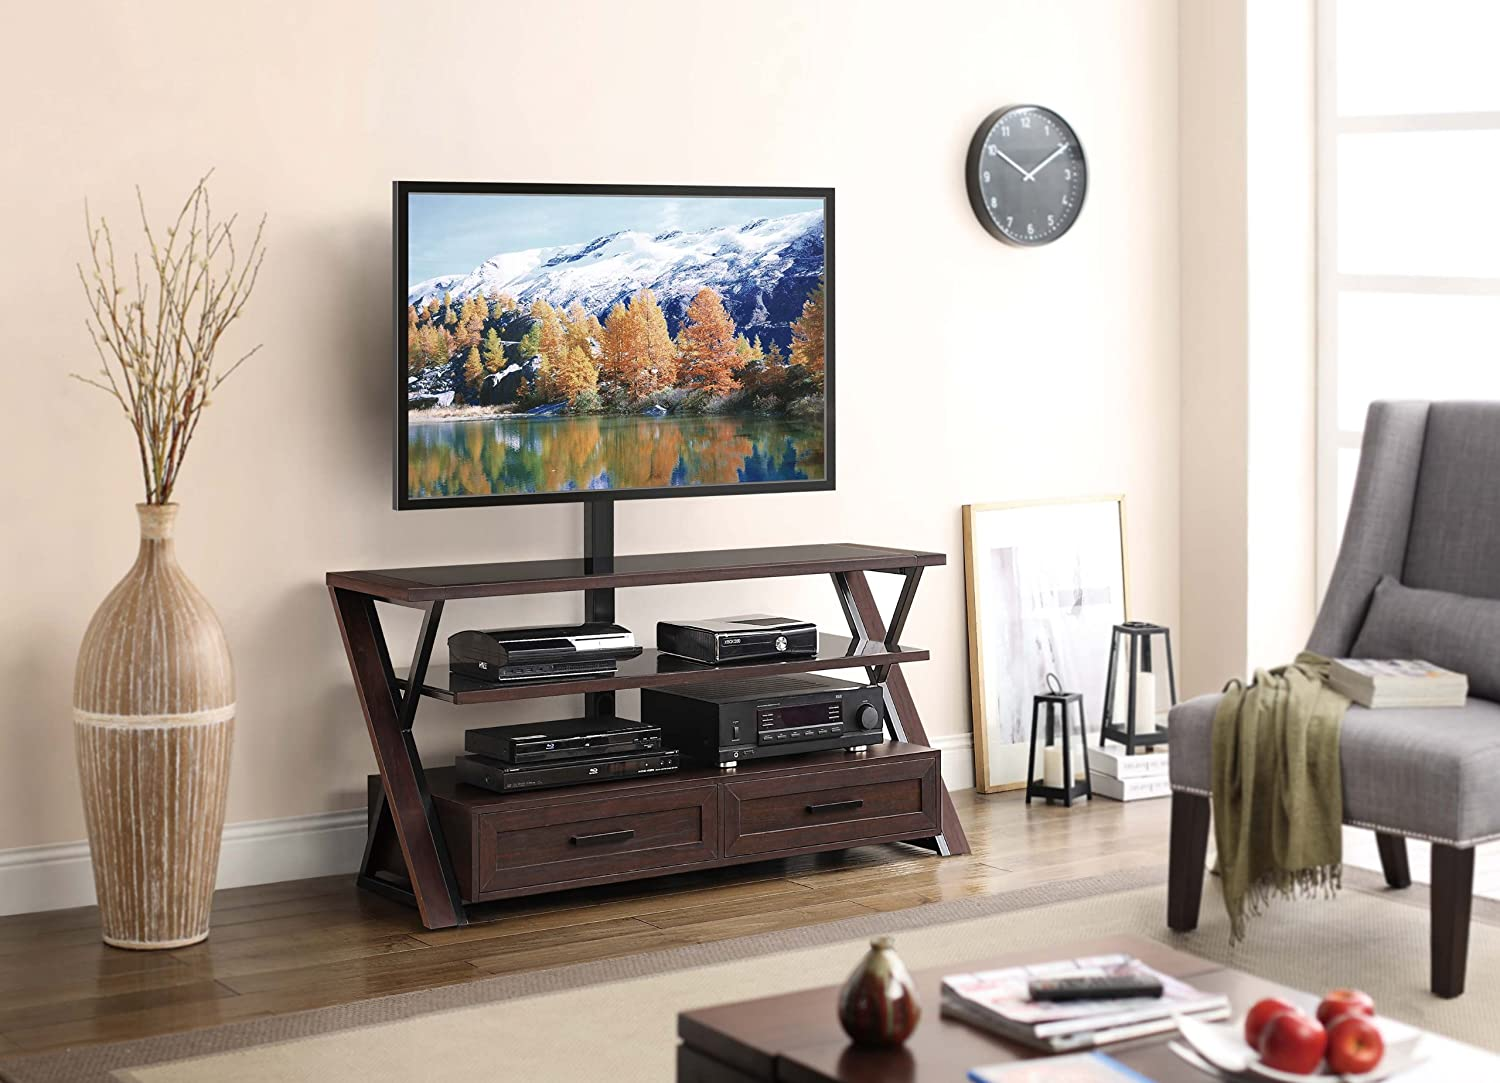 The 5 Best TV Stands In 2021: Reviews & Buying Guide 4